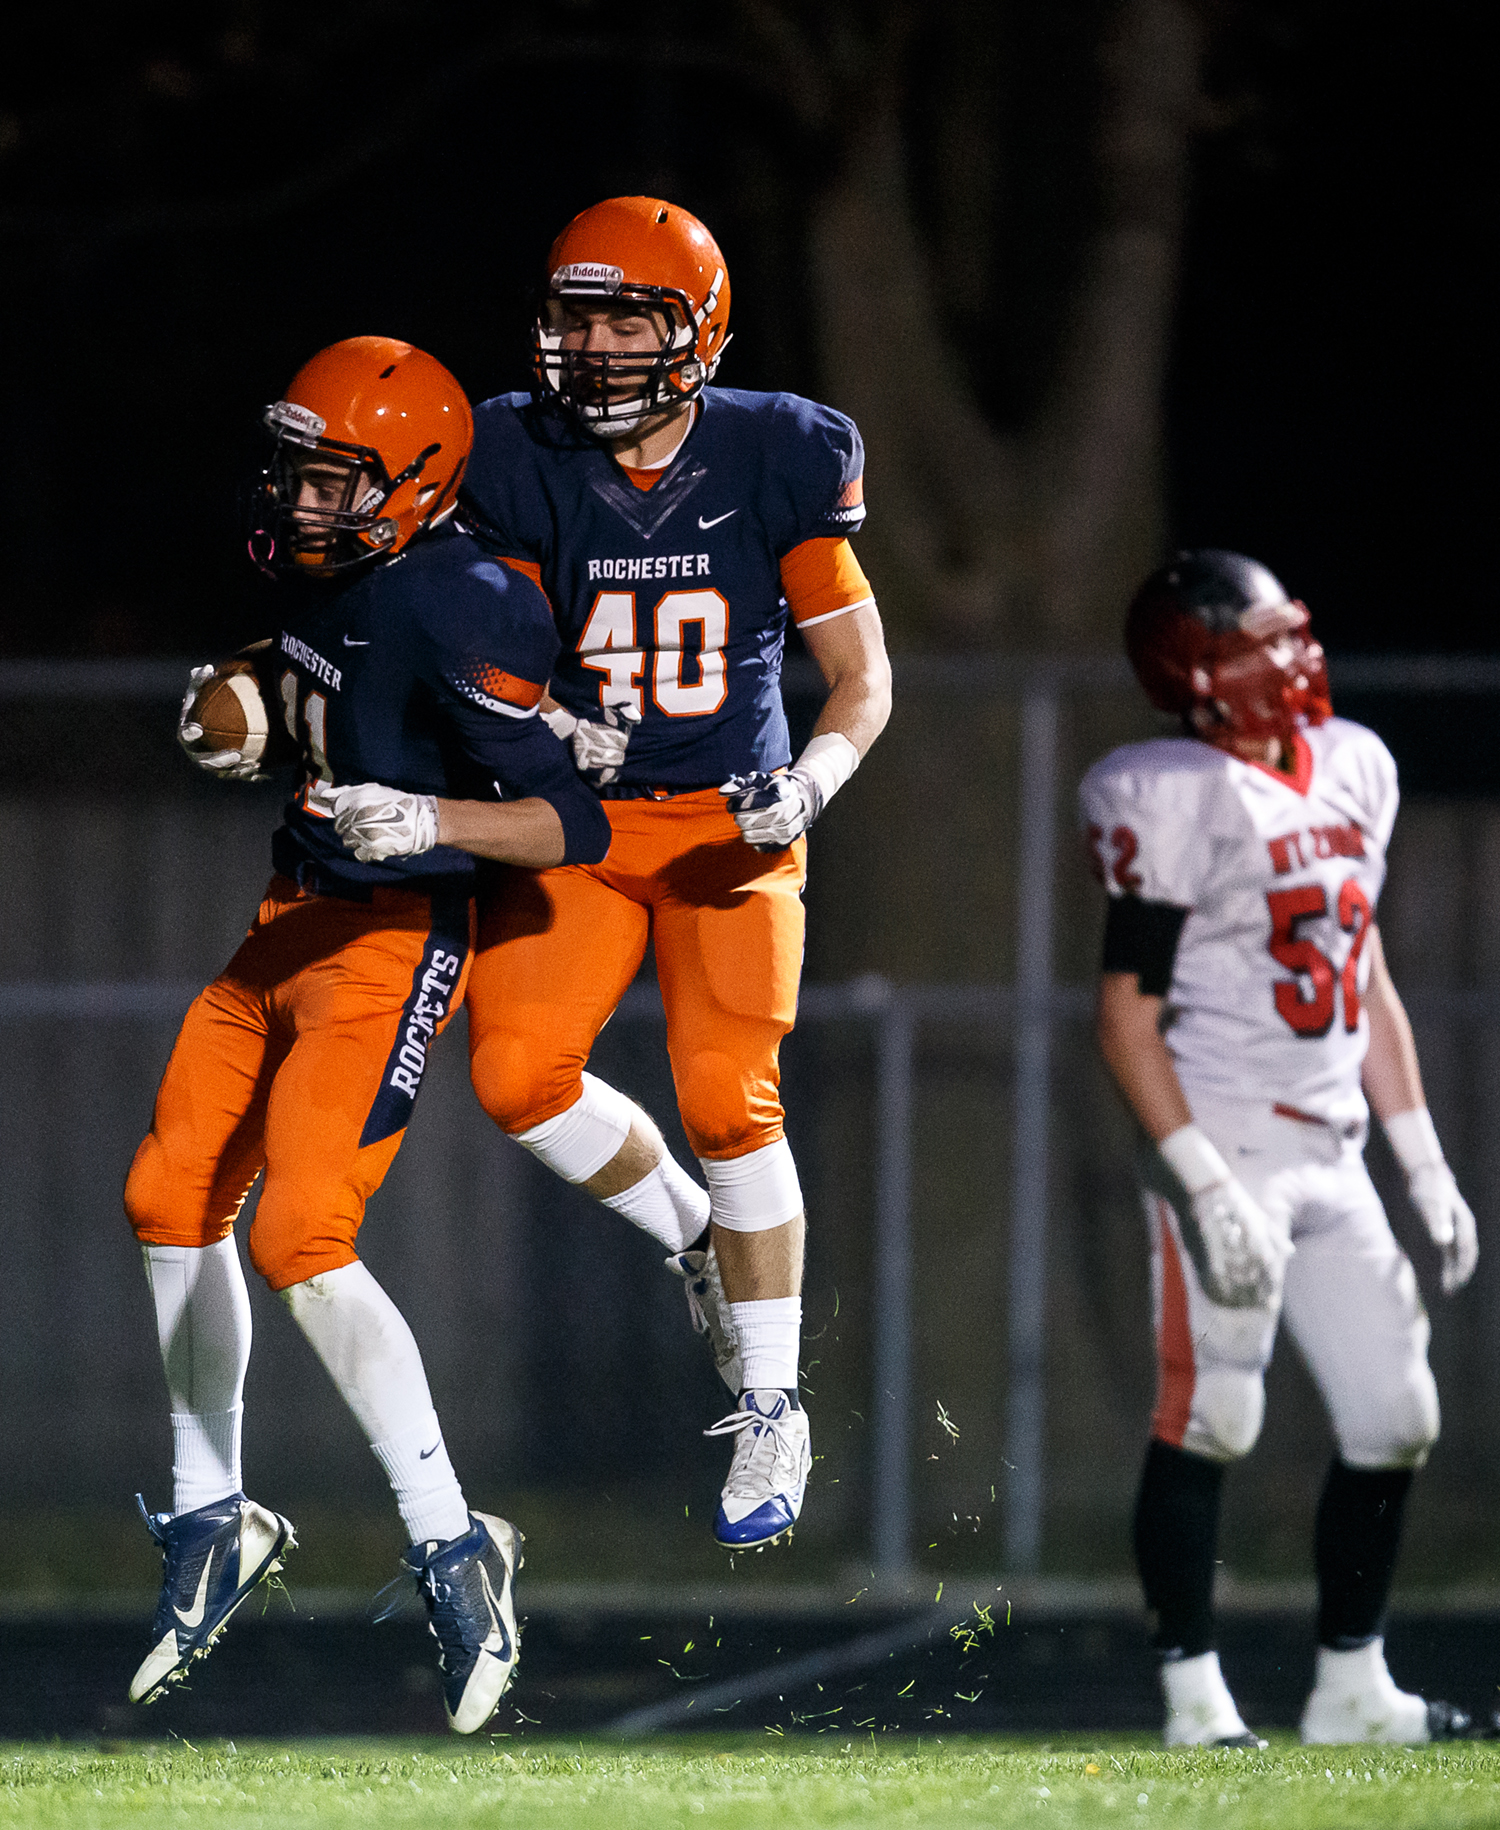 Rochester's Collin Etherton (11) celebrates his touchdown with Colten Shadis (40) as the Rockets take on Mt. Zion in the first half during the first round of the Class 4A playoffs at Rocket Booster Field, Saturday, Nov. 1, 2014, in Rochester, Ill. Justin L. Fowler/The State Journal-Register